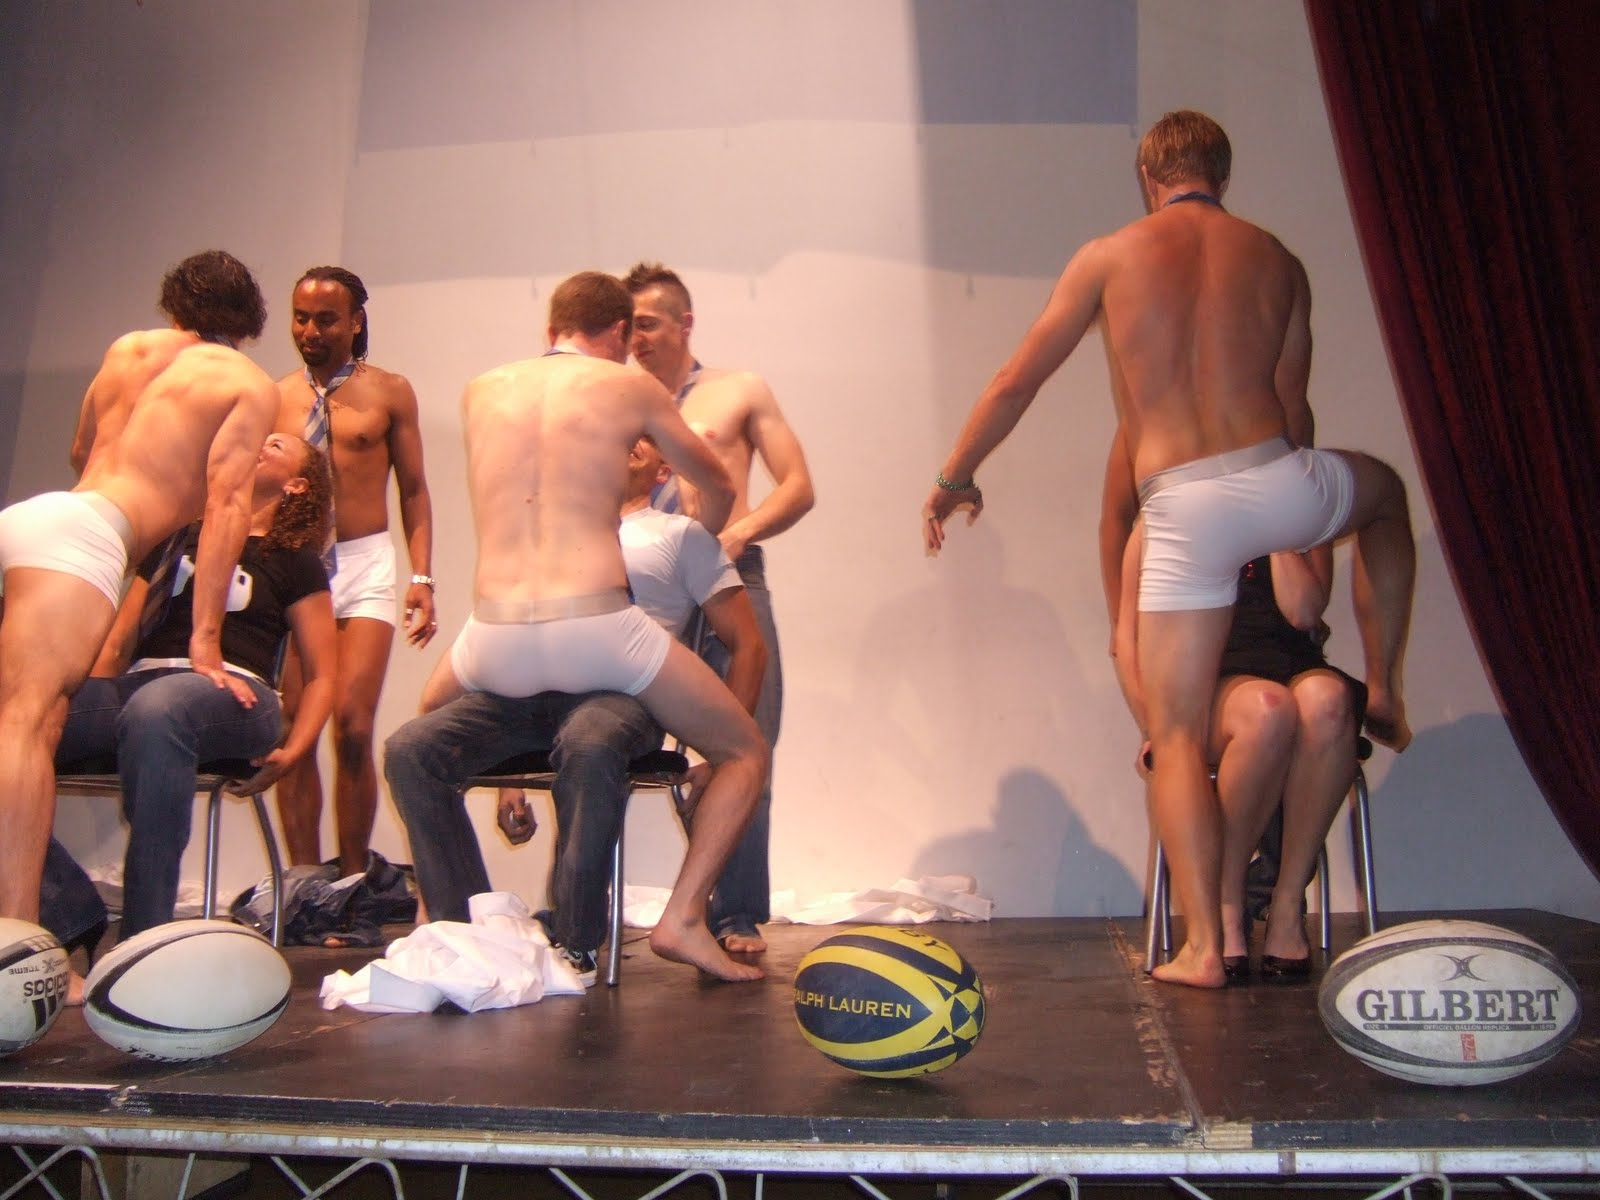 Naked male rugby photo really. And